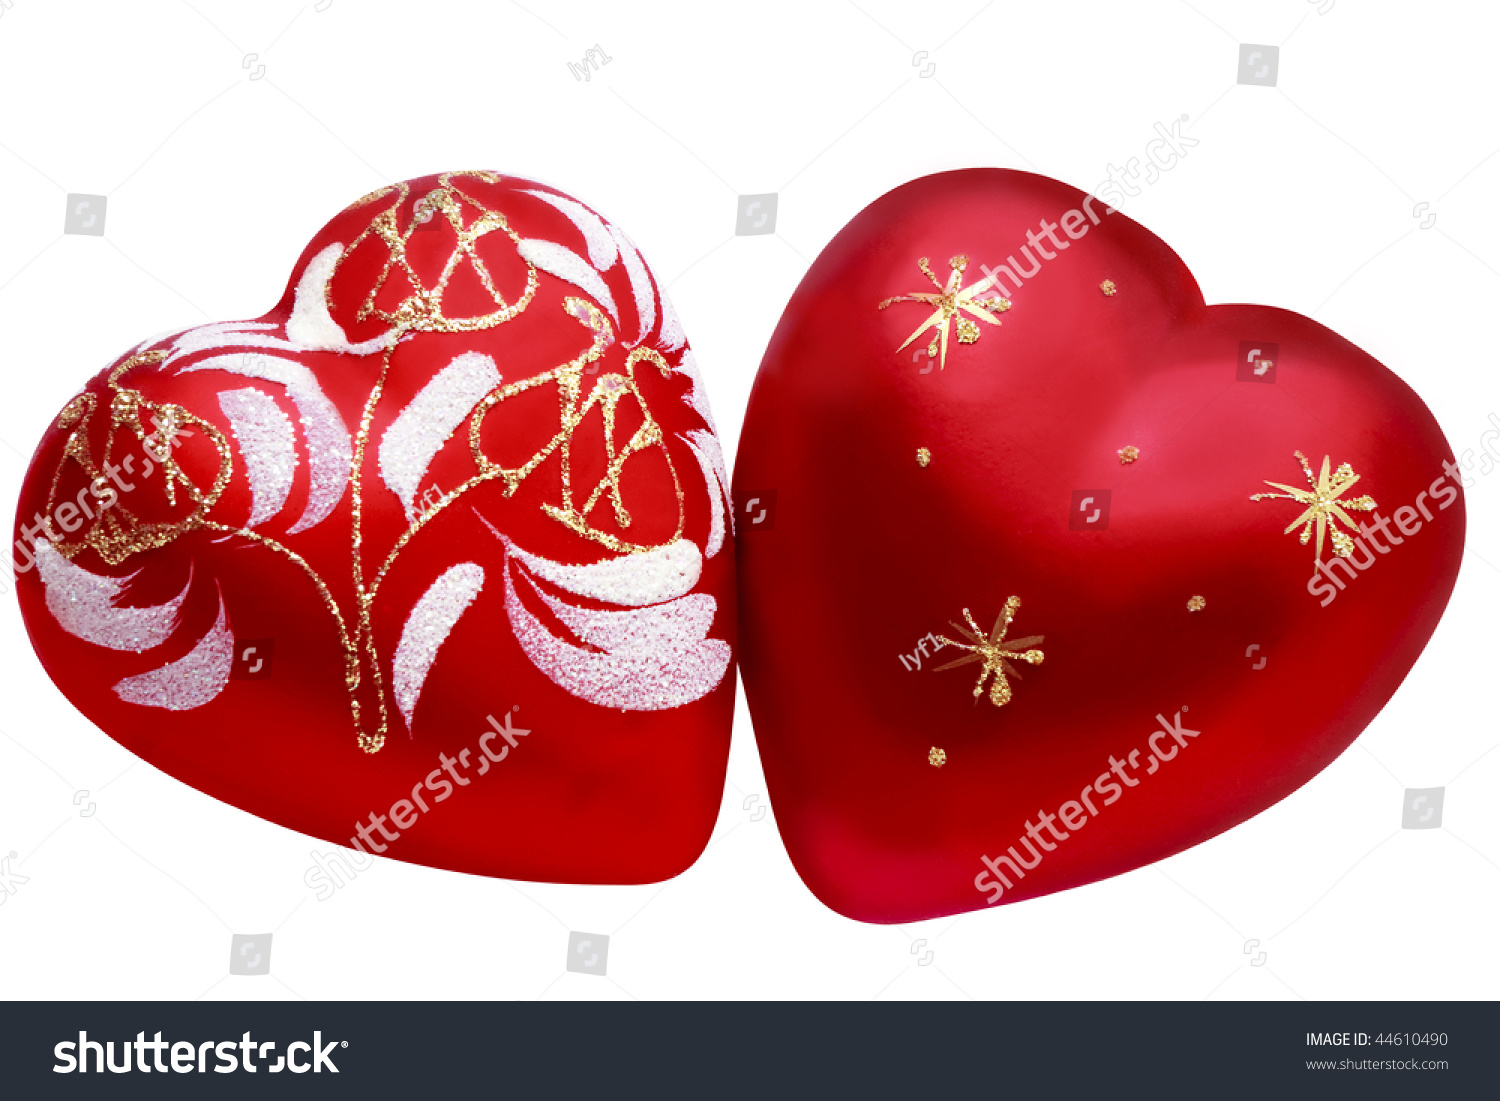 Two hearts symbol love between two stock photo 44610490 shutterstock two hearts as a symbol of love between two people biocorpaavc Images